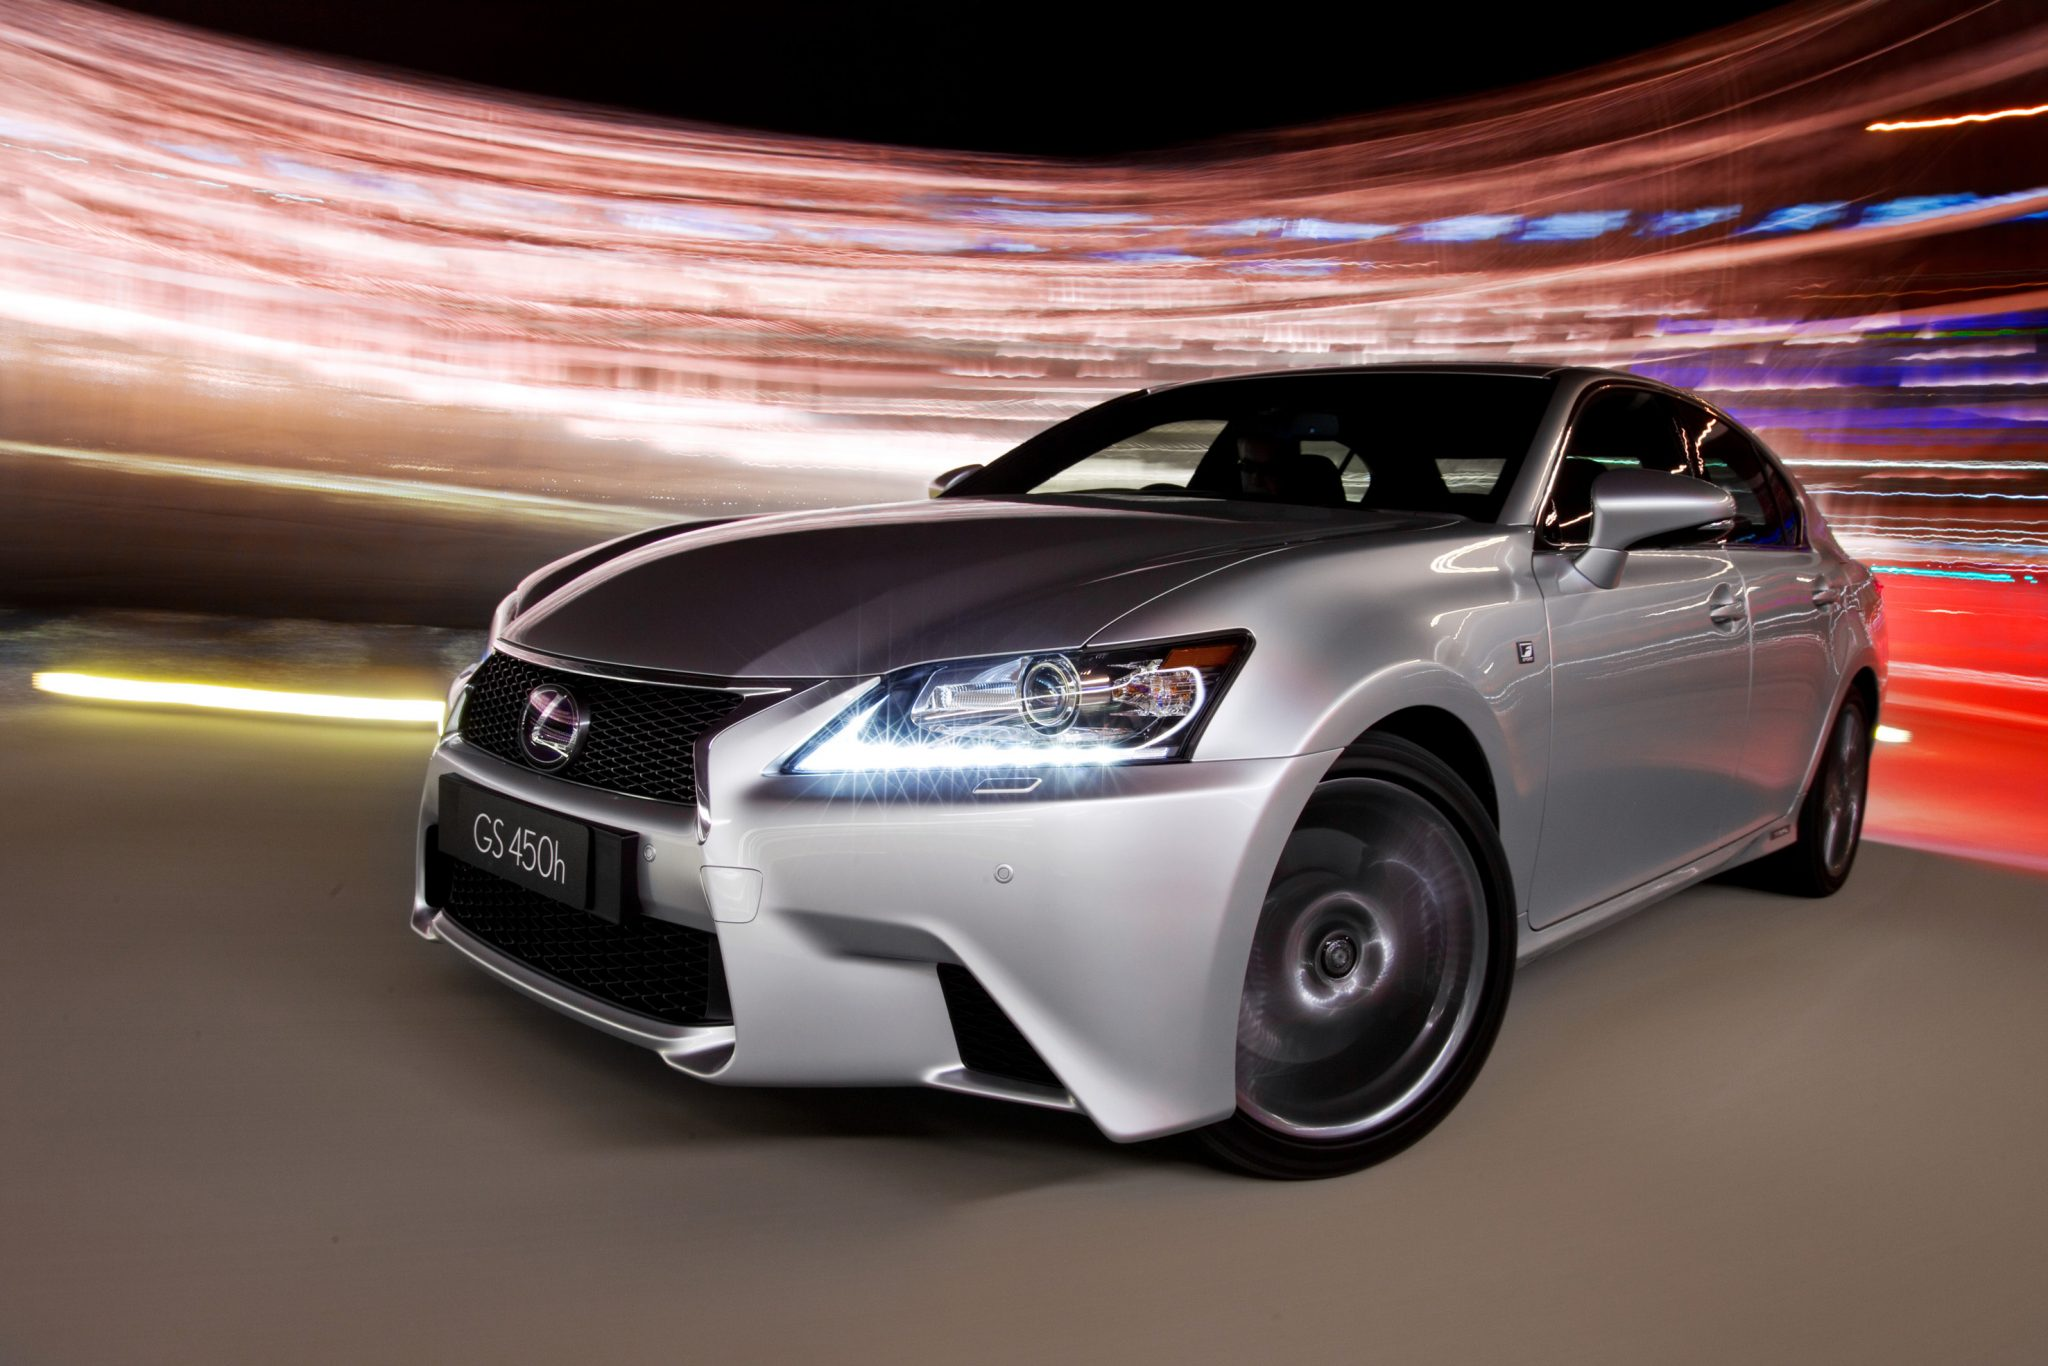 lexus gs 450h launched in australia. Black Bedroom Furniture Sets. Home Design Ideas